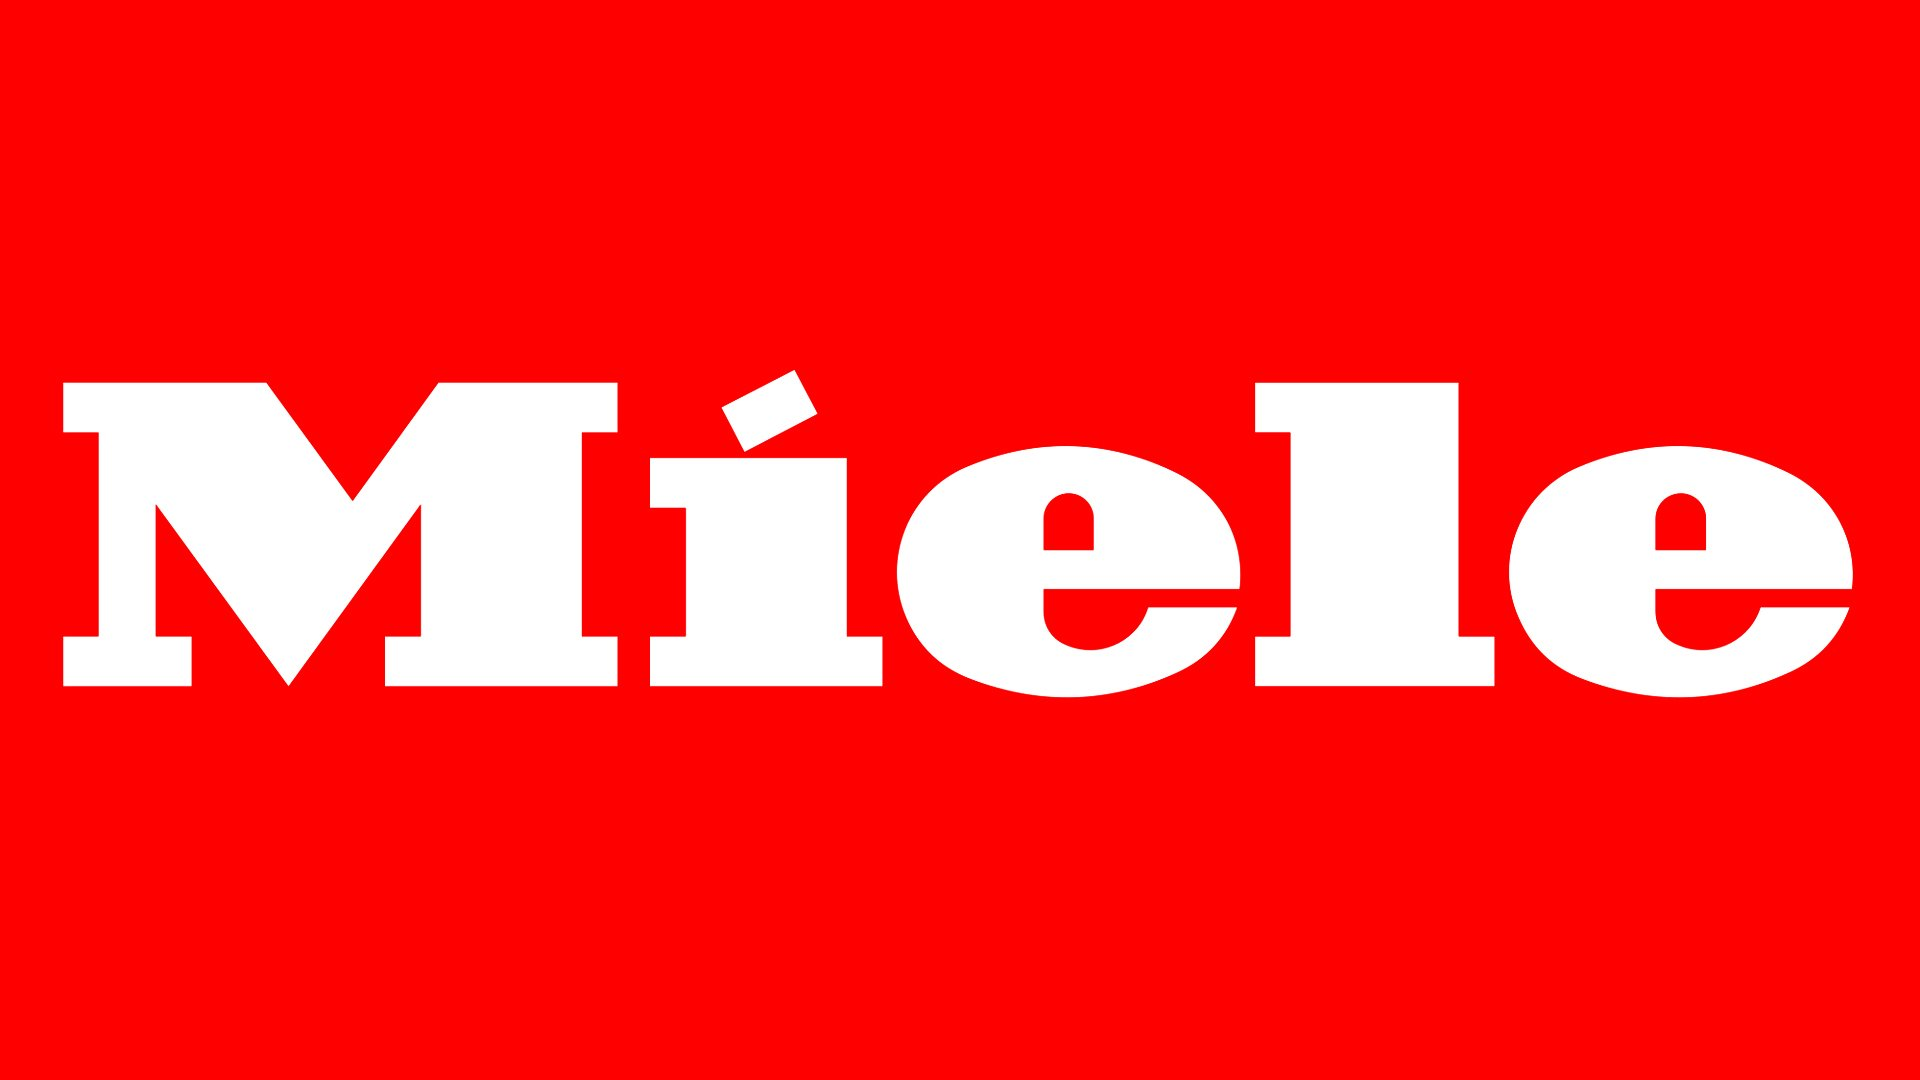 miele logo miele symbol meaning history and evolution. Black Bedroom Furniture Sets. Home Design Ideas